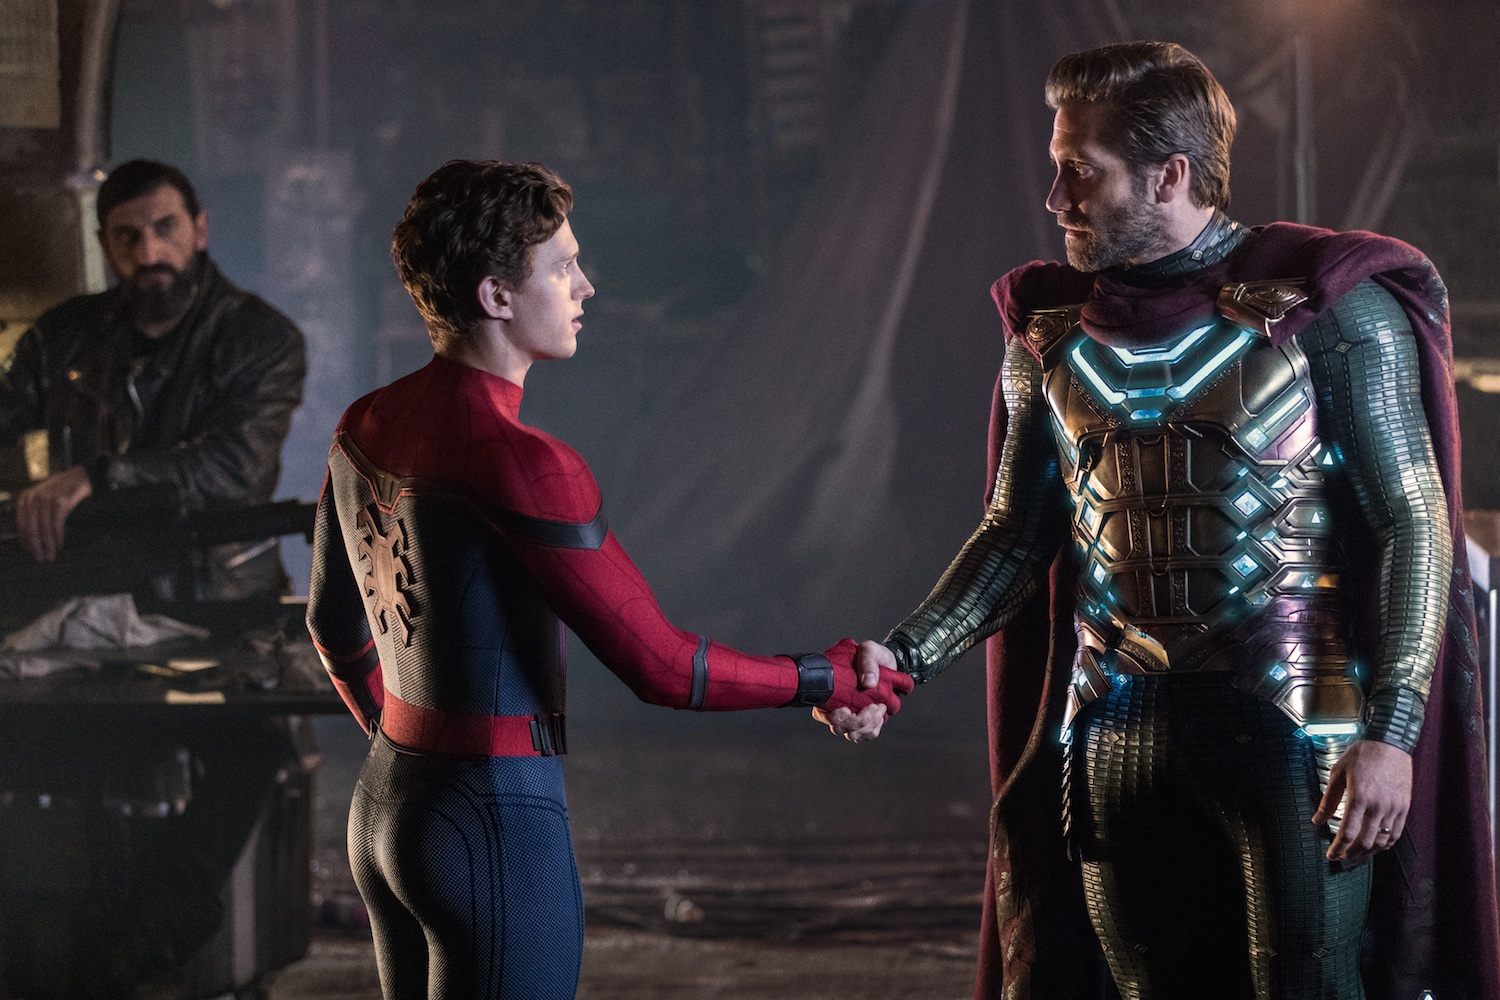 'Spider-Man' Cast Reveal Their Scripts Are as Redacted as the Mueller Report